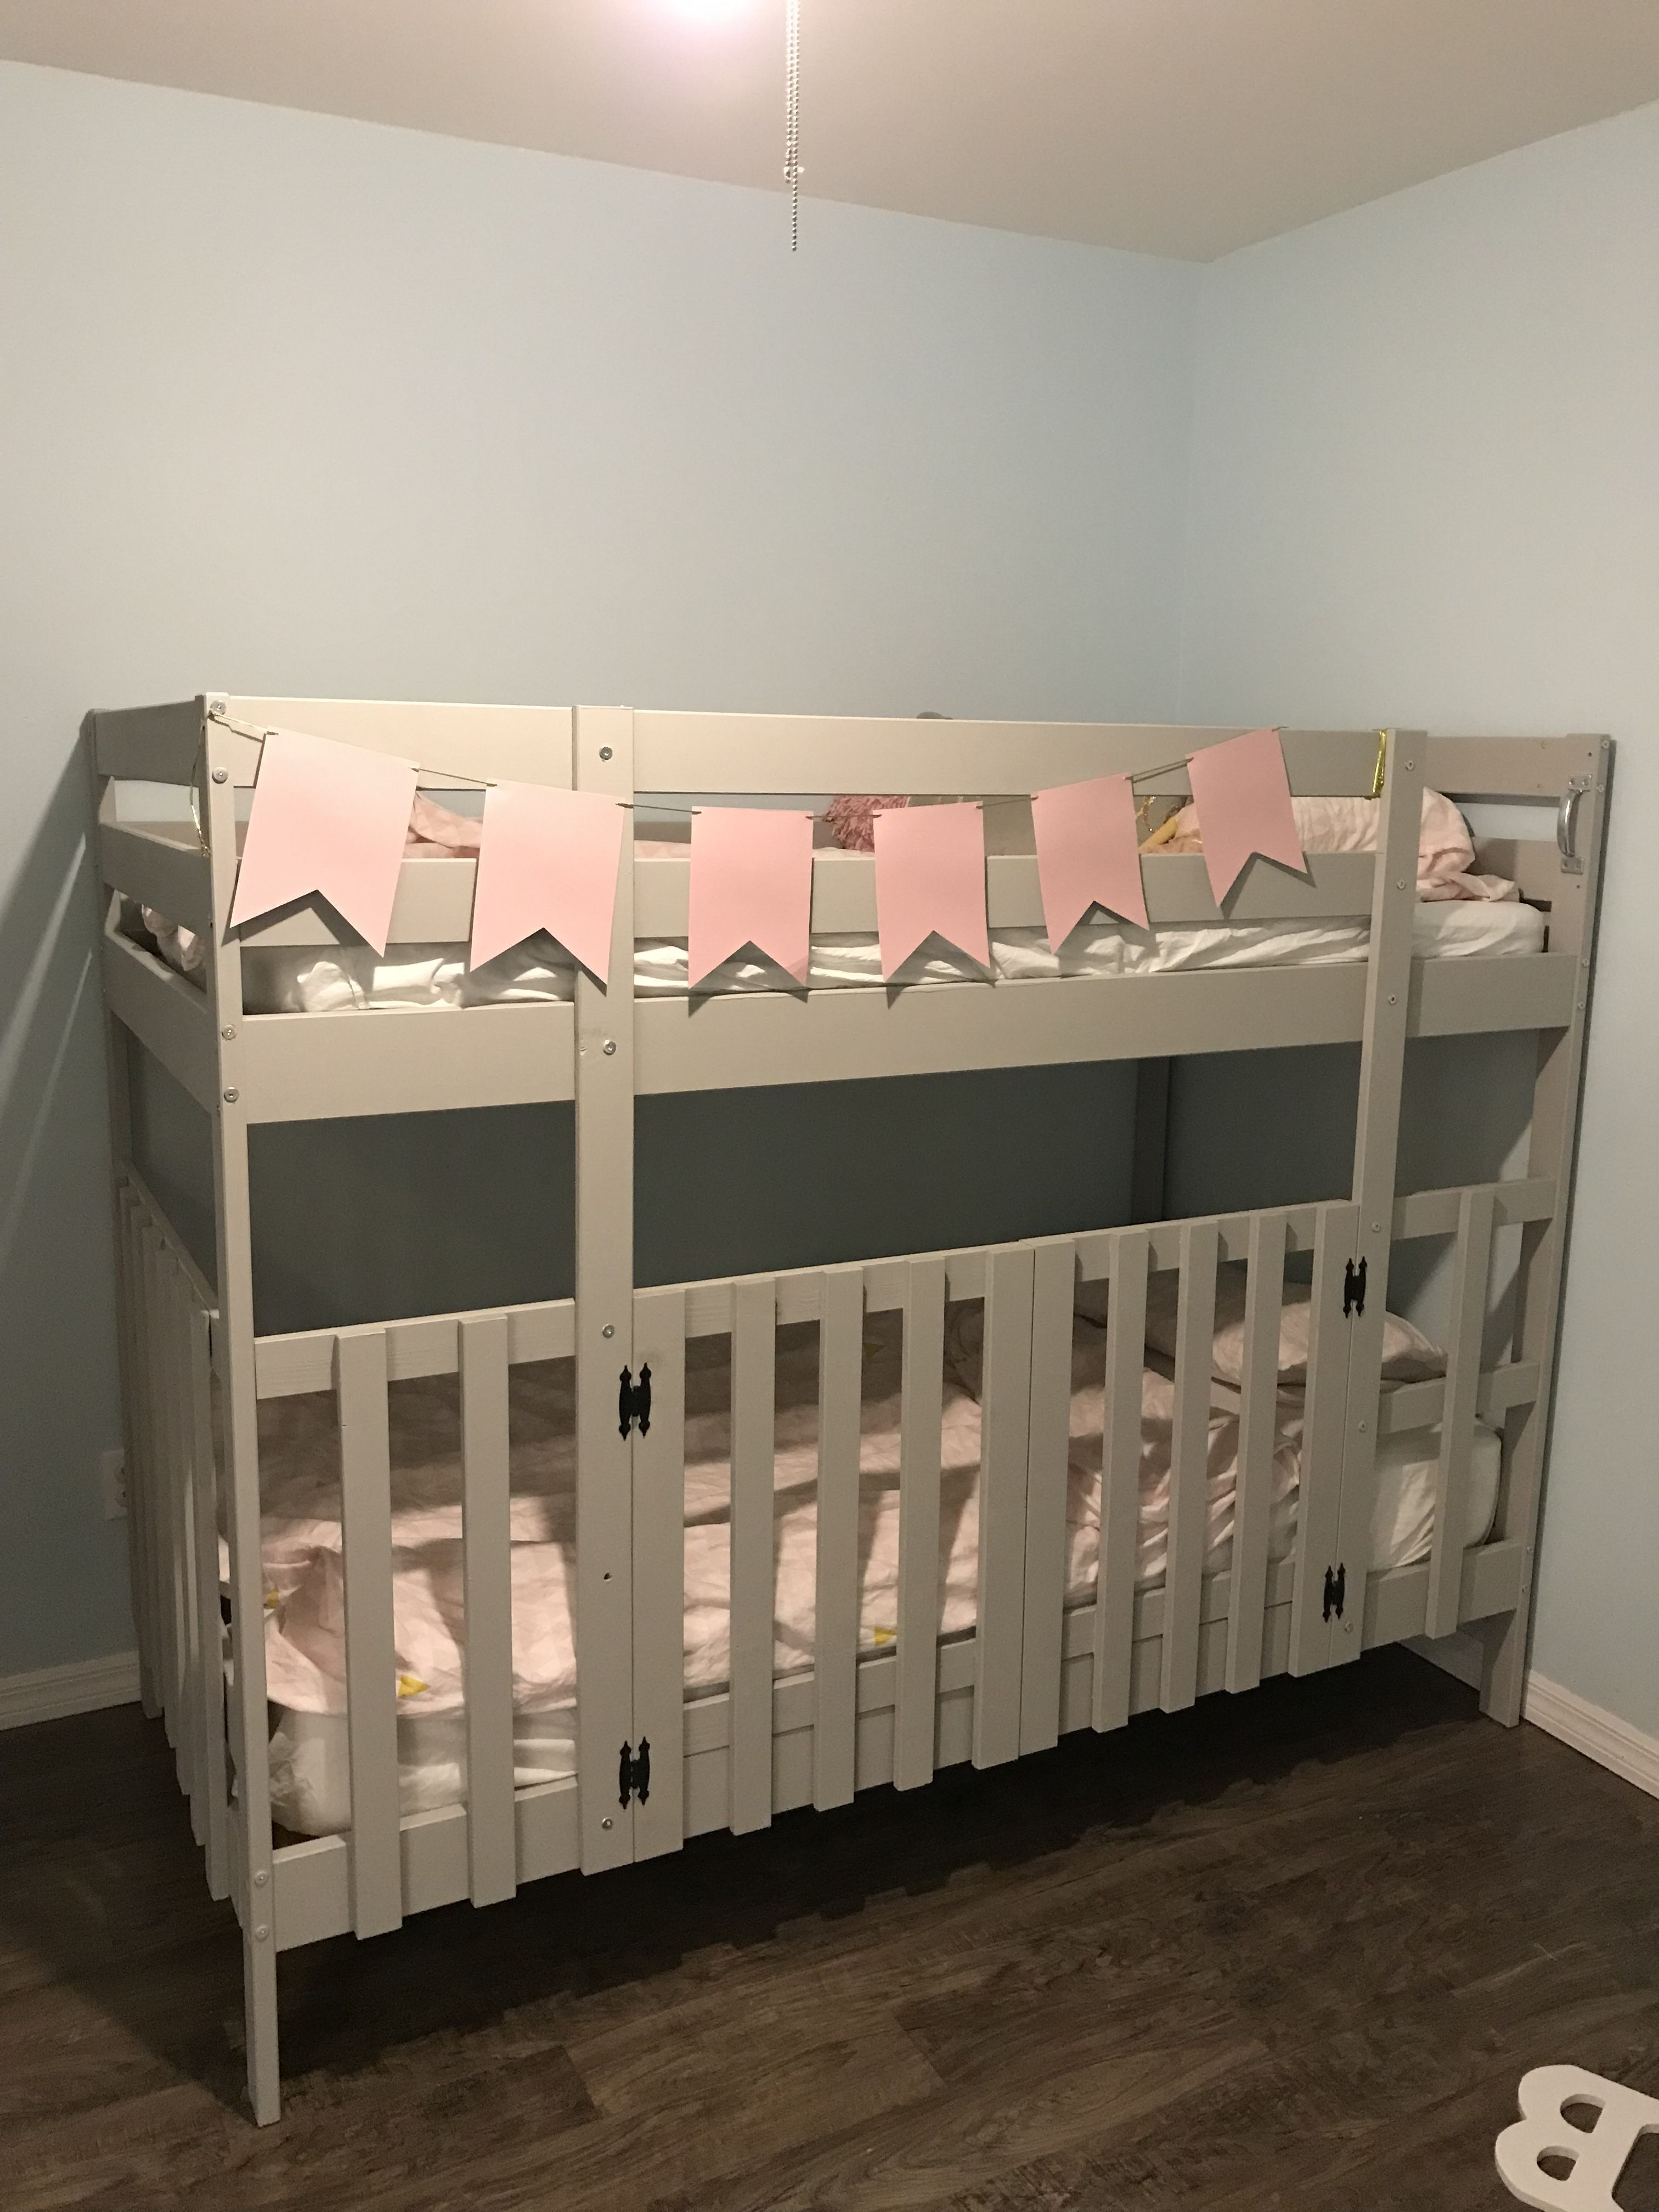 Bunk bed hack created a crib at the bottom Kid beds